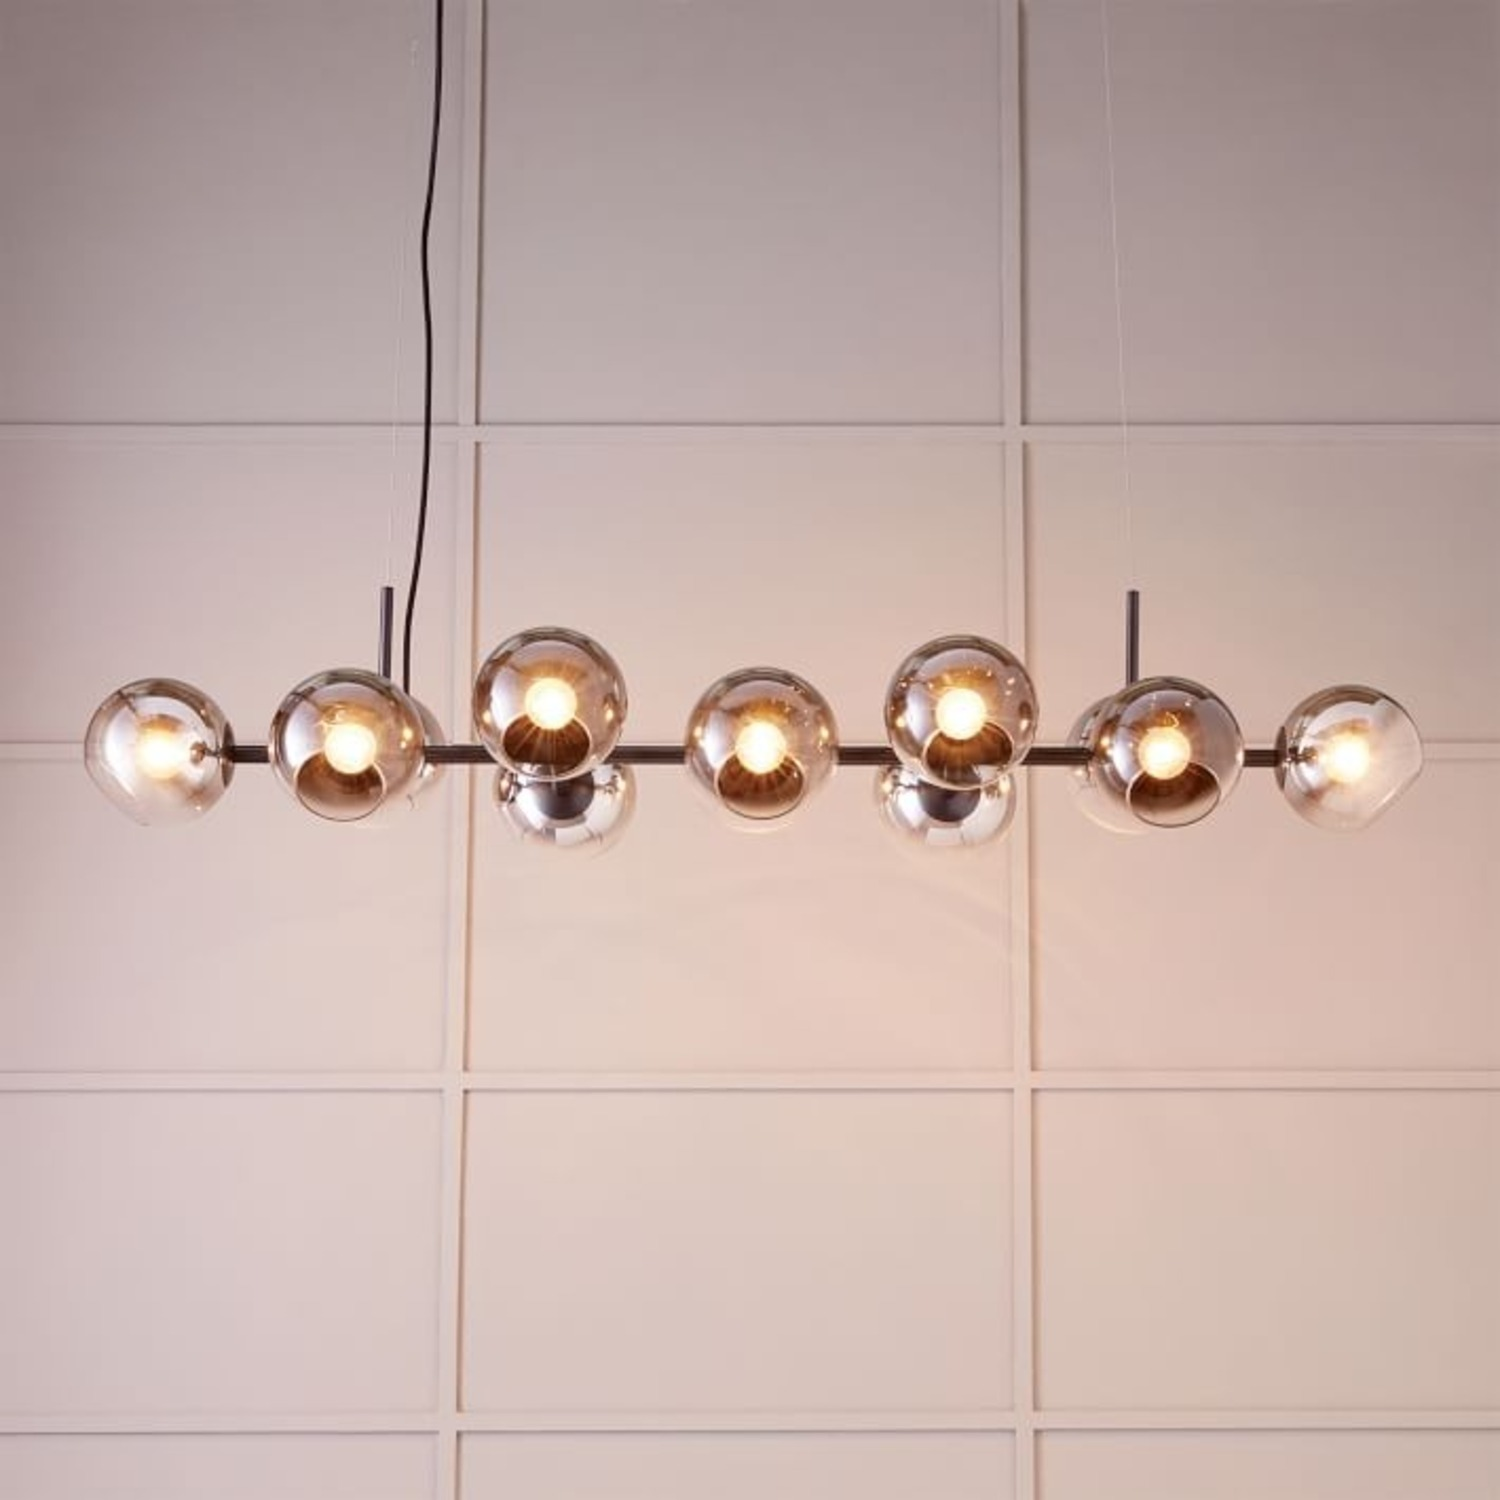 West Elm Staggered Glass 12-Light Chandelier - image-1